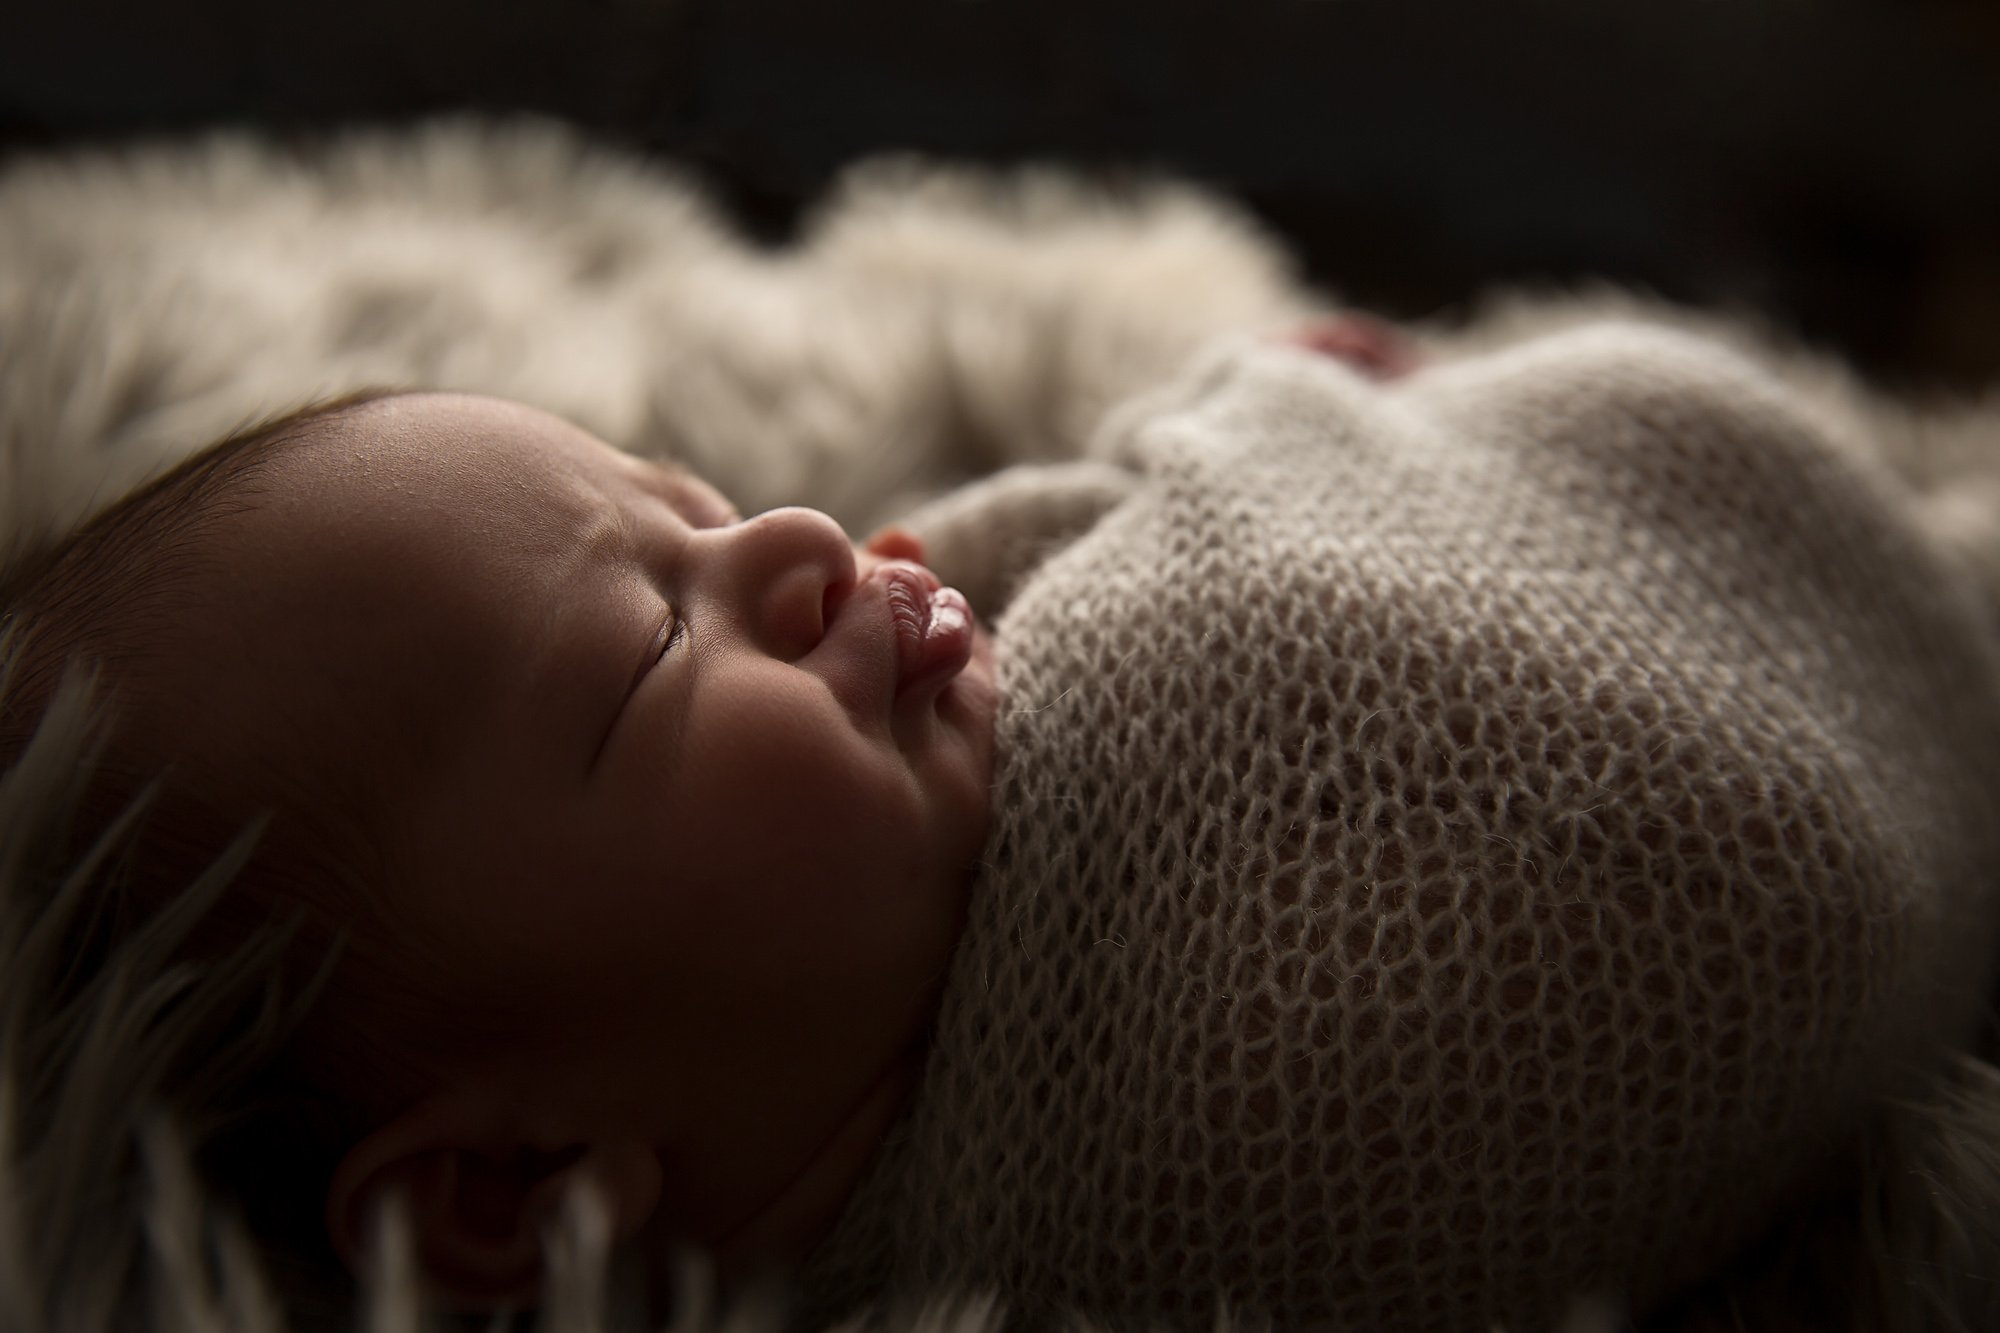 Closeup of Newborn baby with puckered lips by Julie Collins Photography